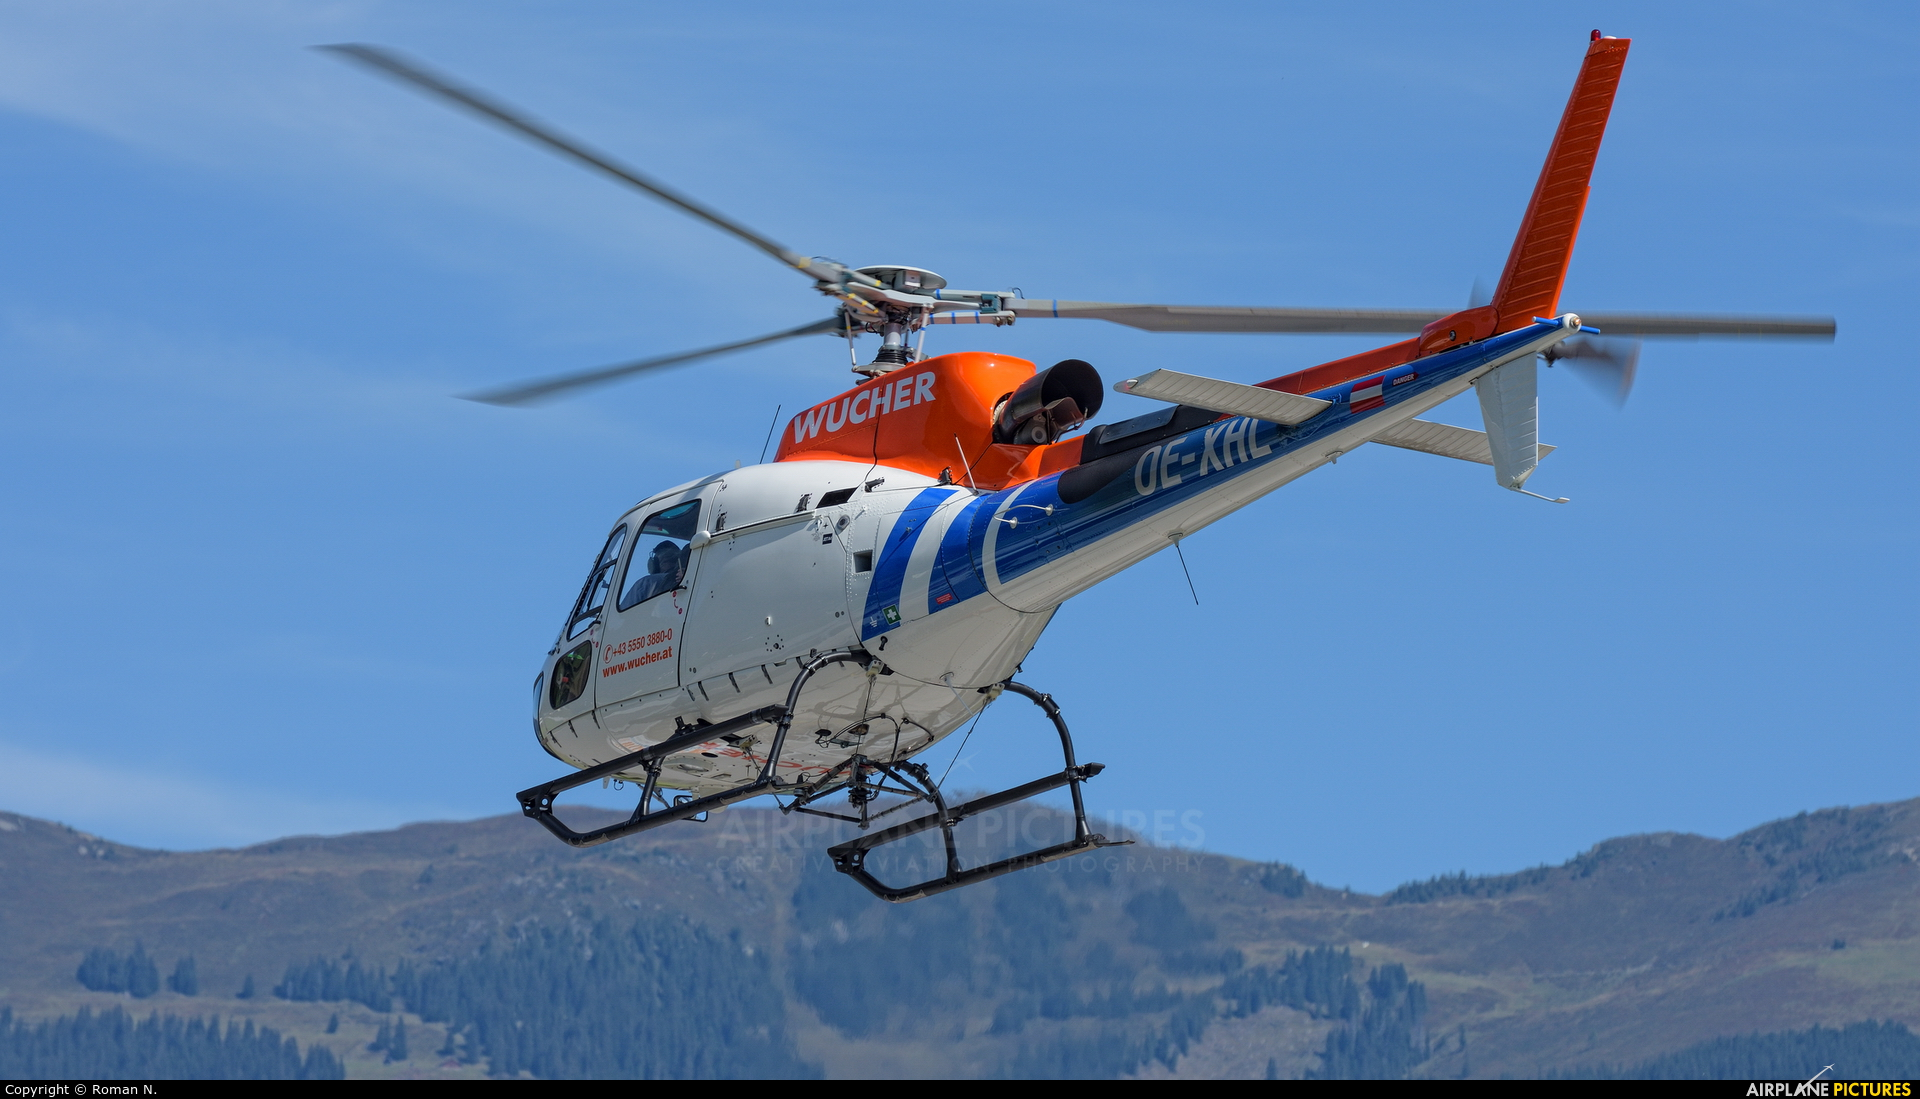 Wucher Helicopter OE-XHL aircraft at Zell am See